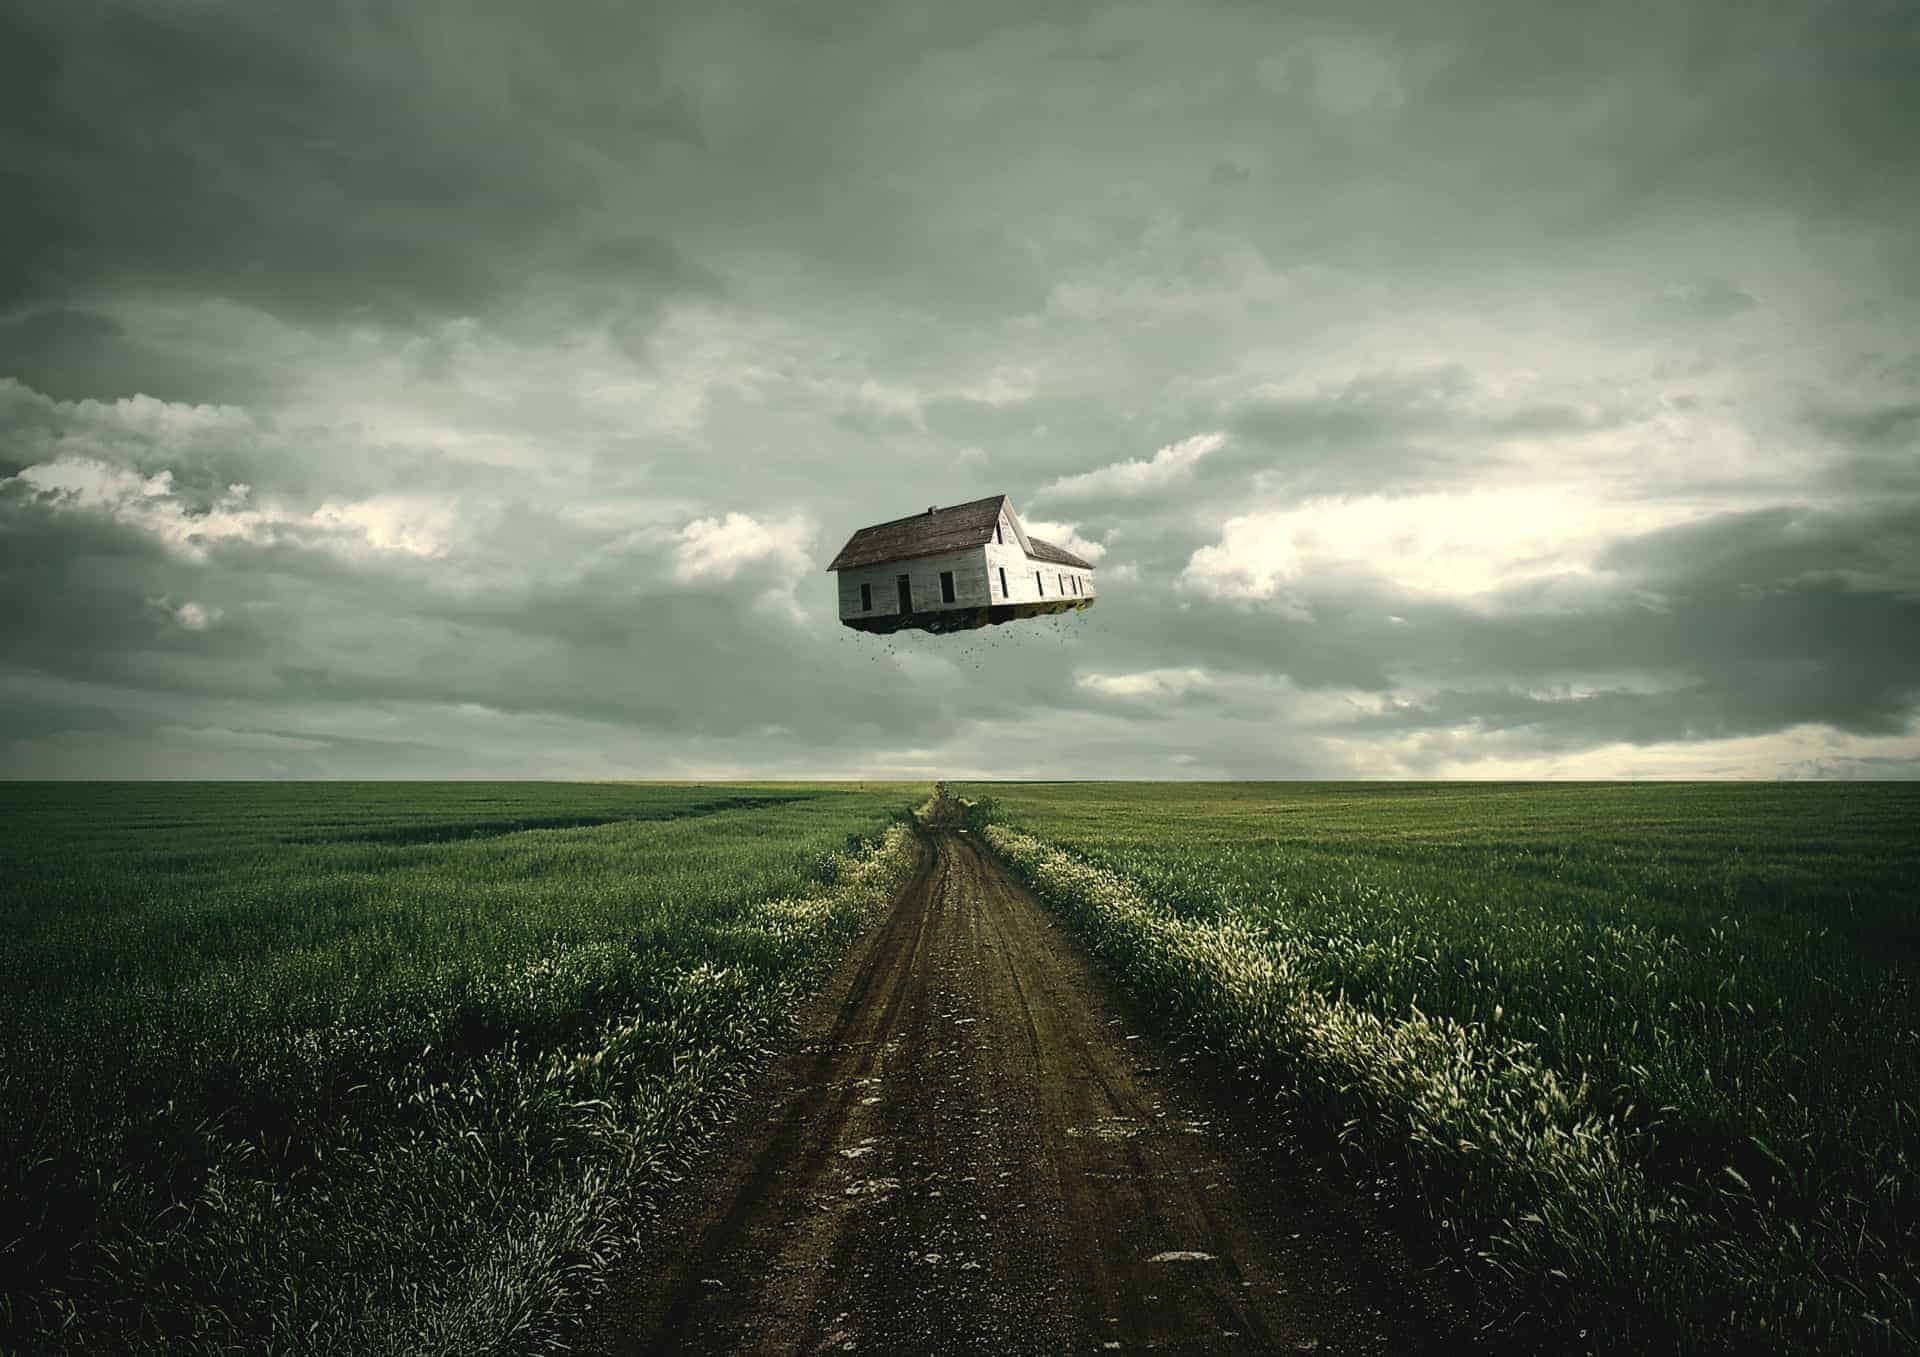 How to Create a Surreal Traveling House Photo Manipulation in Photoshop